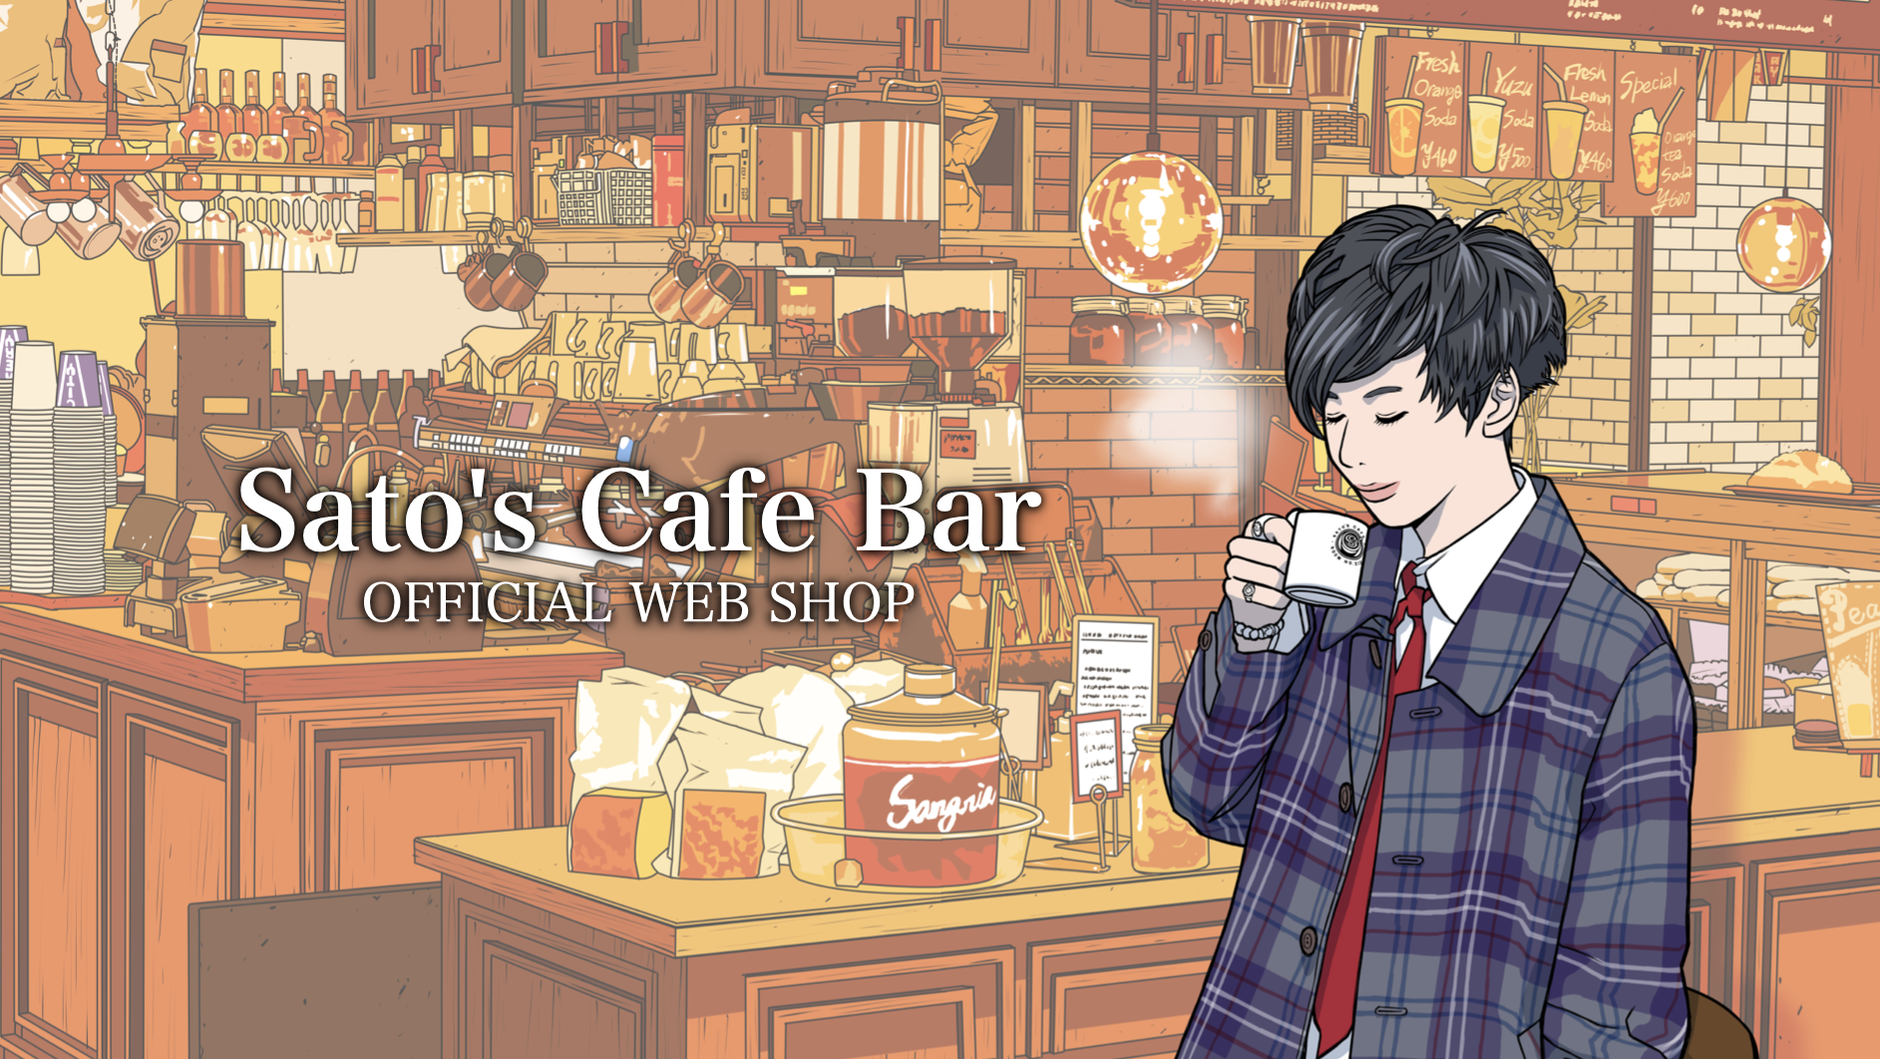 Sato's Cafe Bar